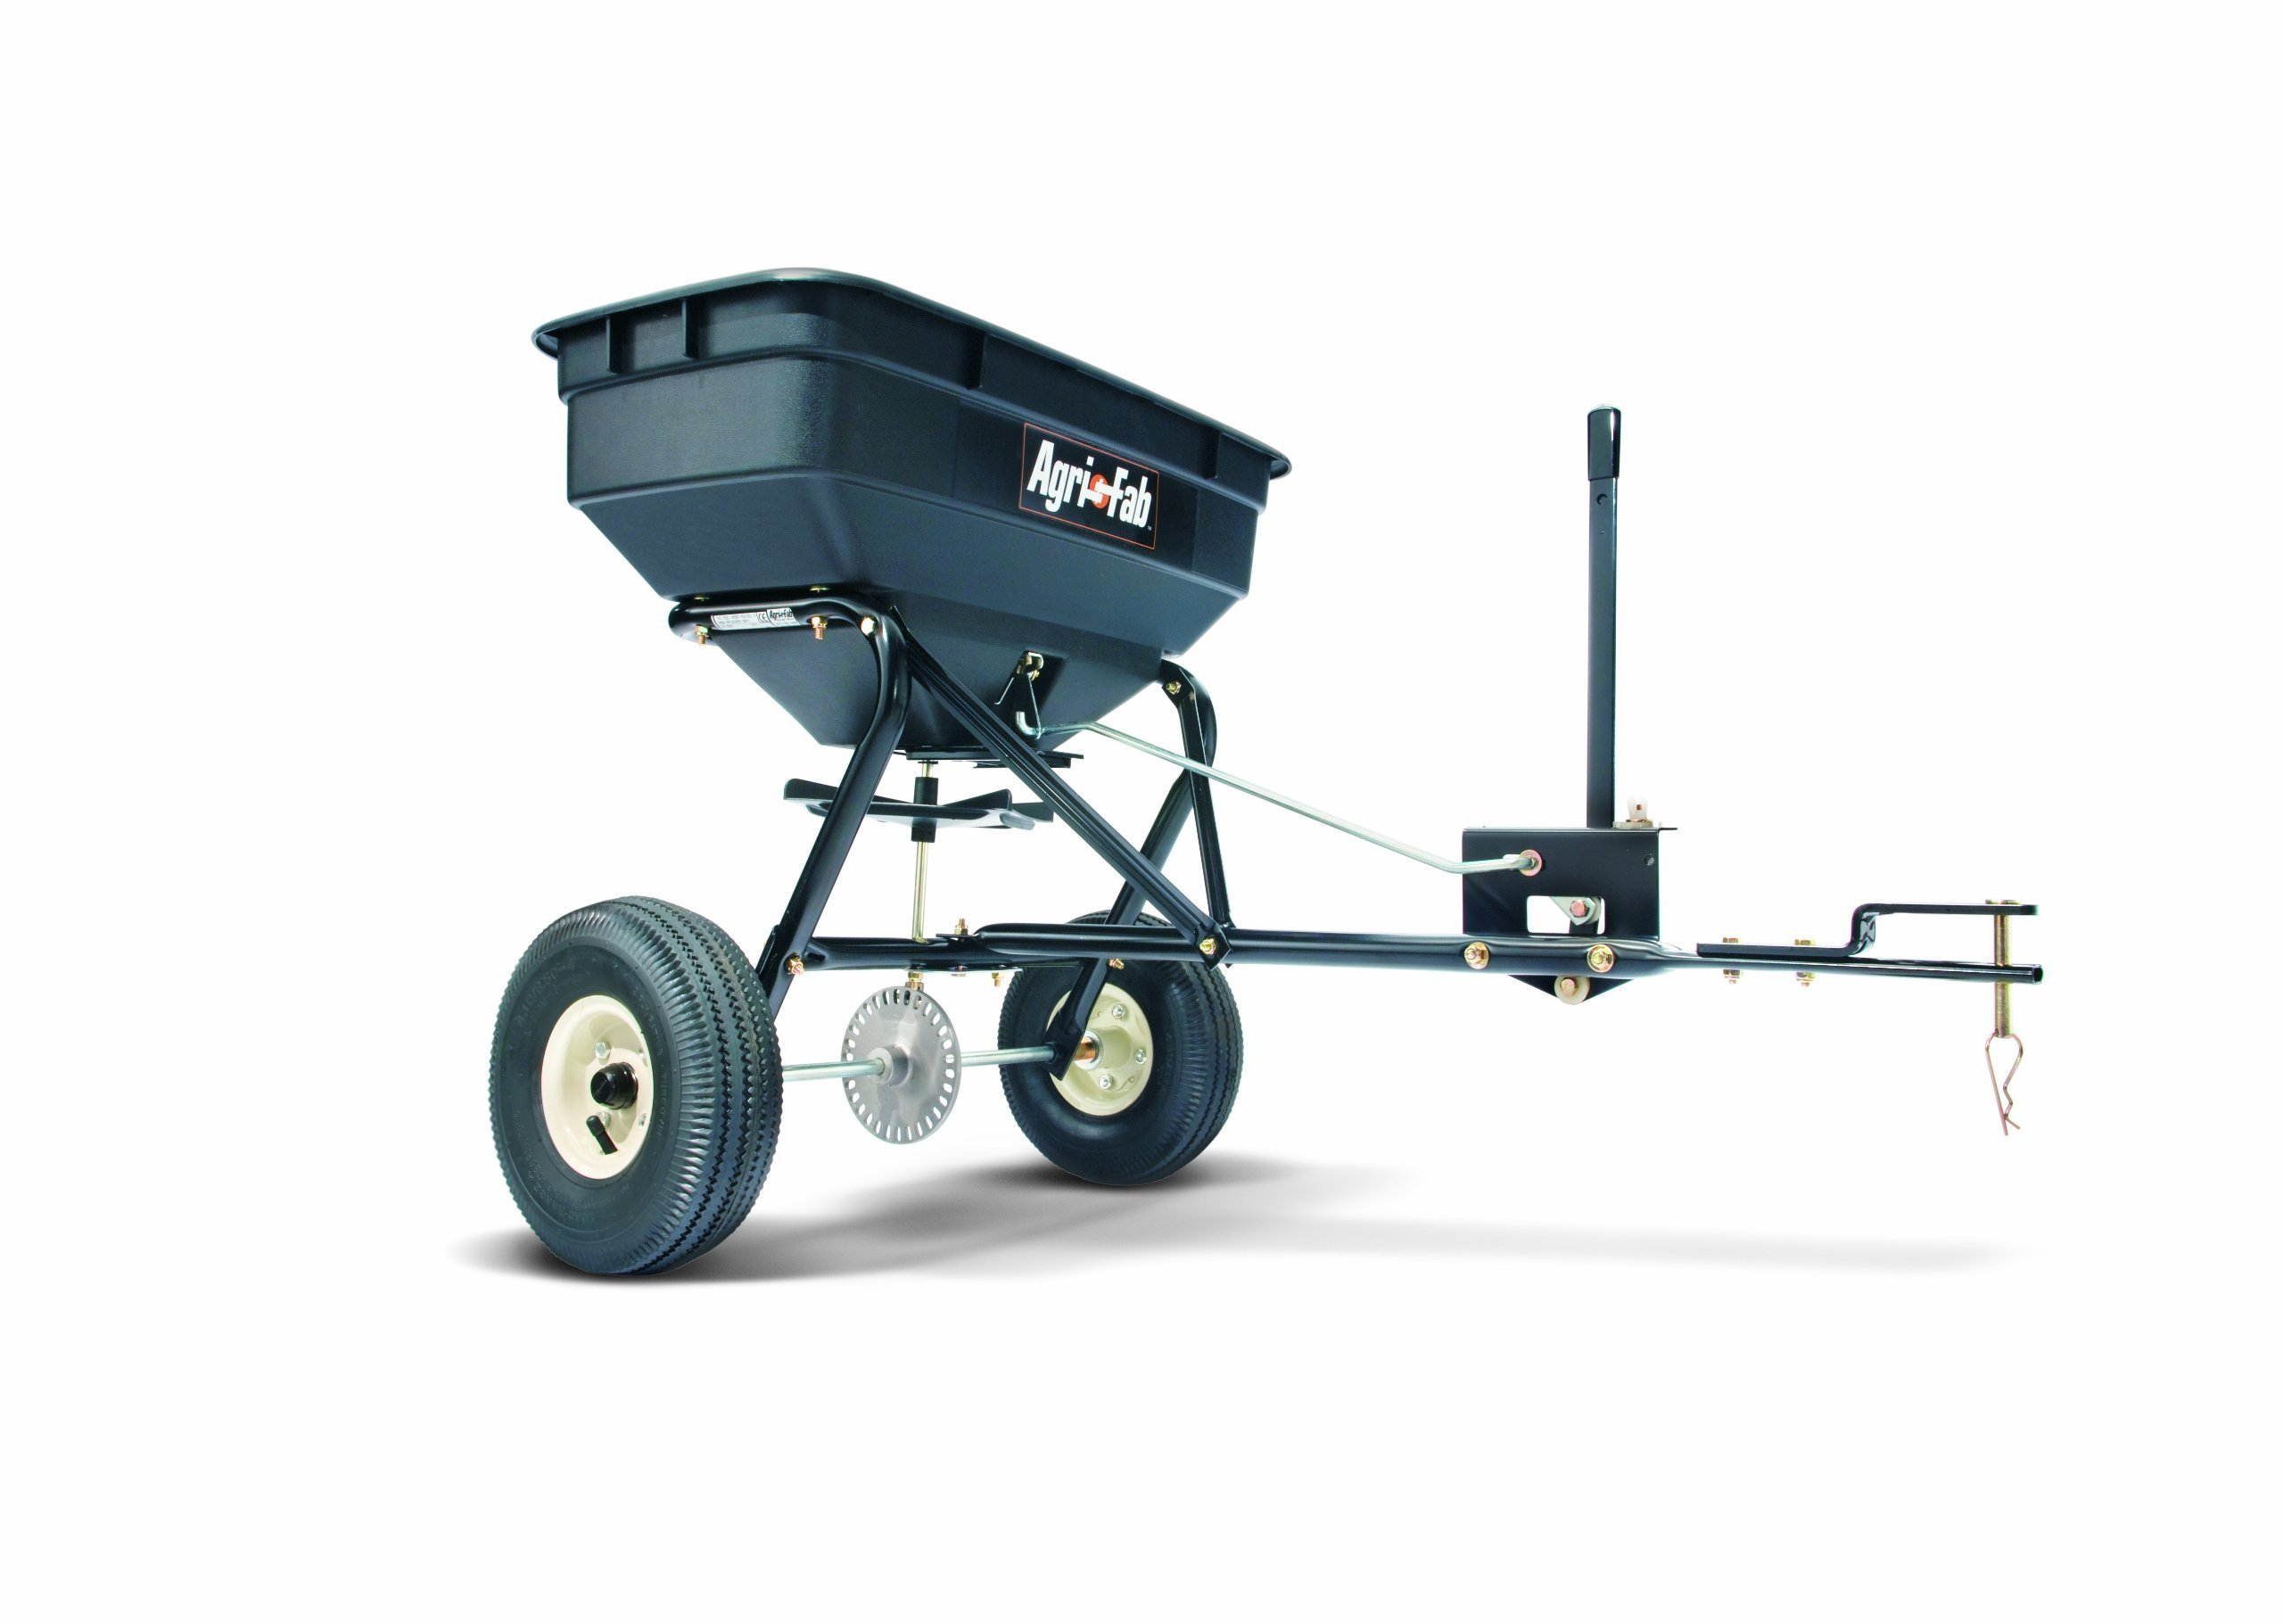 Agri-Fab 45-0215 100-Pound Max Tow Behind Broadcast Spreader, Black by Agri-Fab